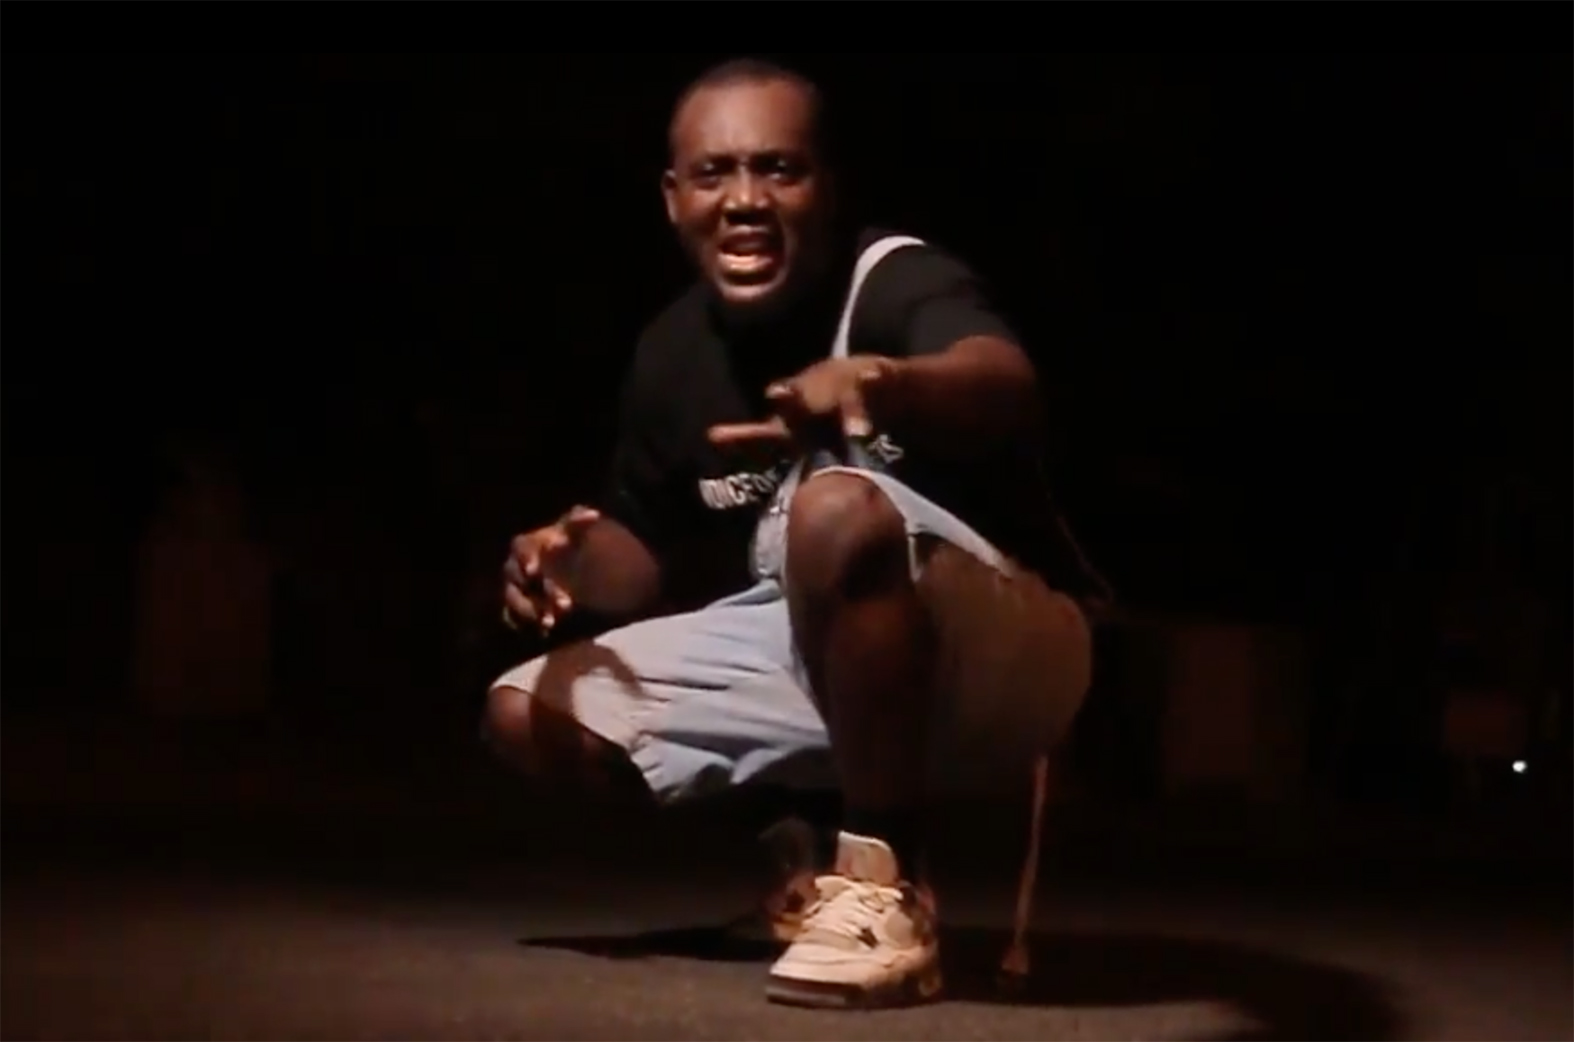 Video: Black Sheep (Freestyle) by Yeyo